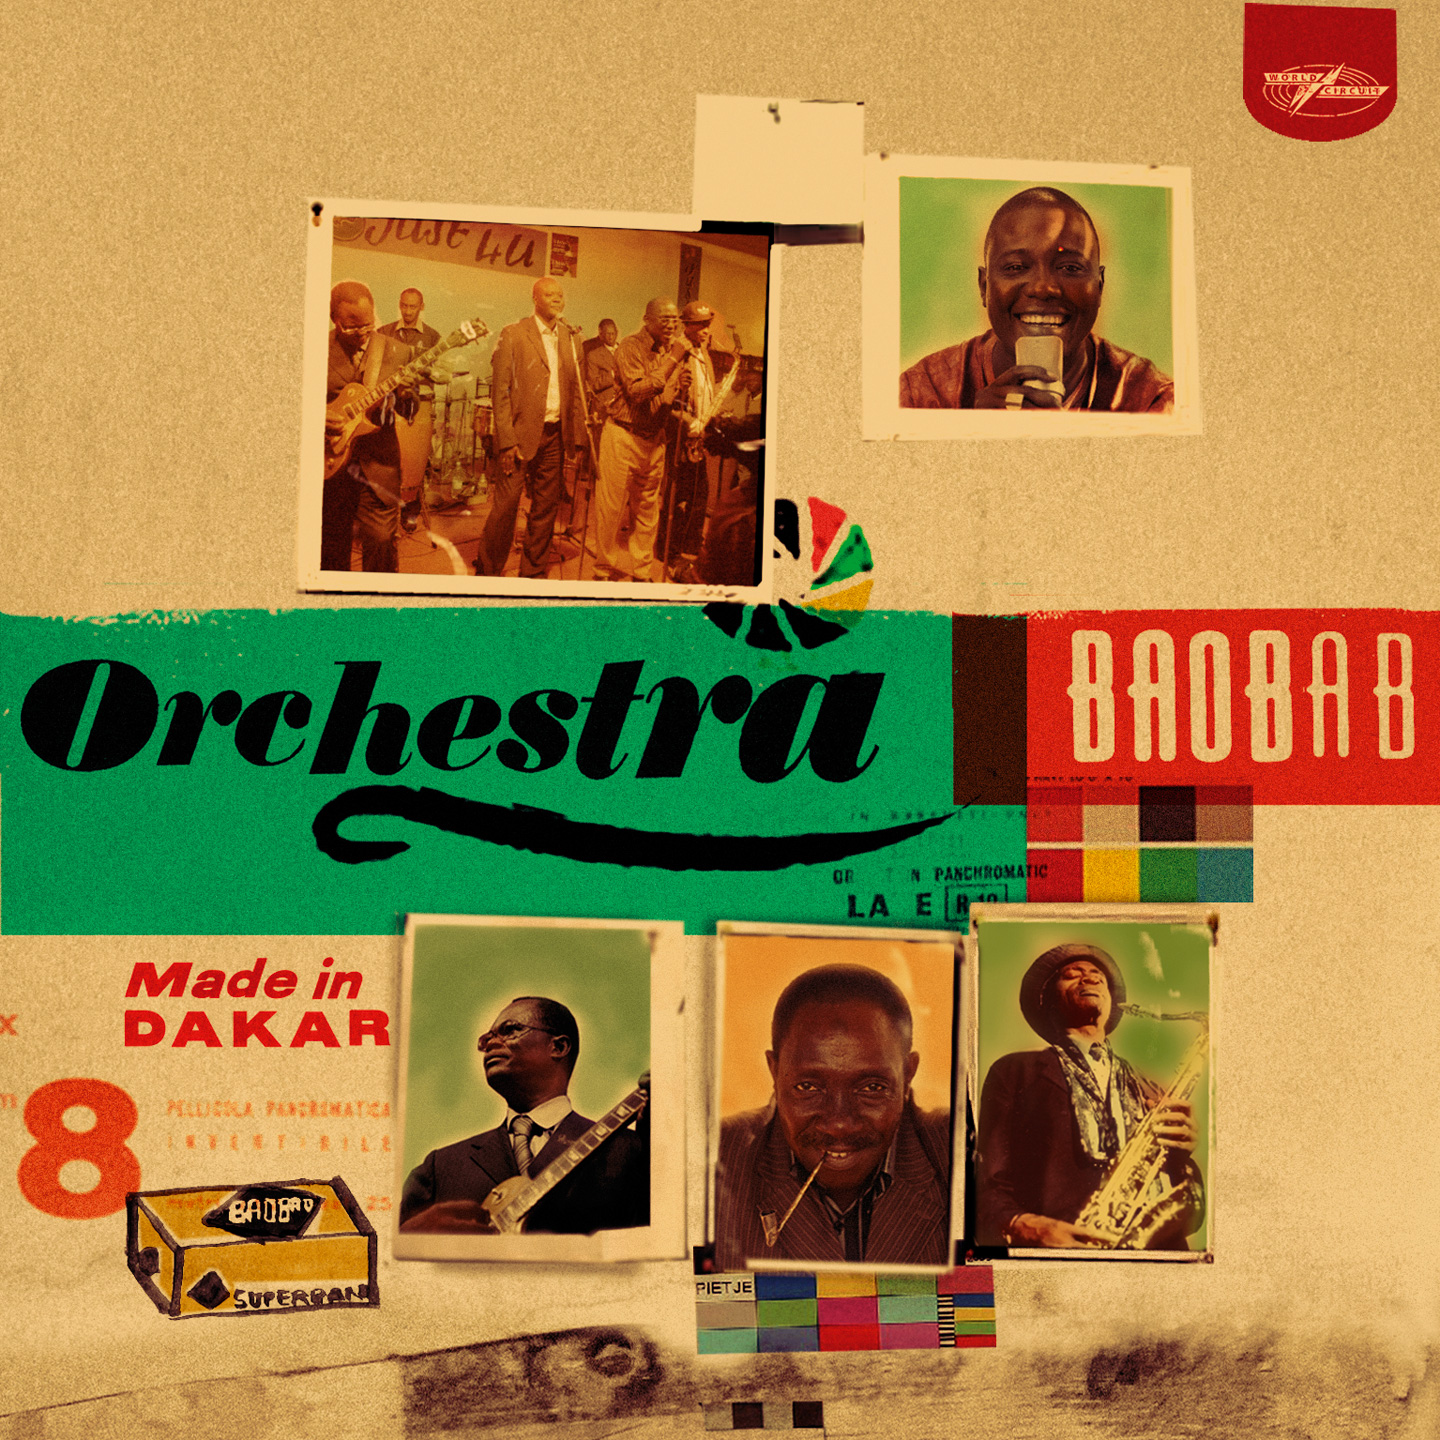 078 Orchestra Baobab Made In Dakar Square